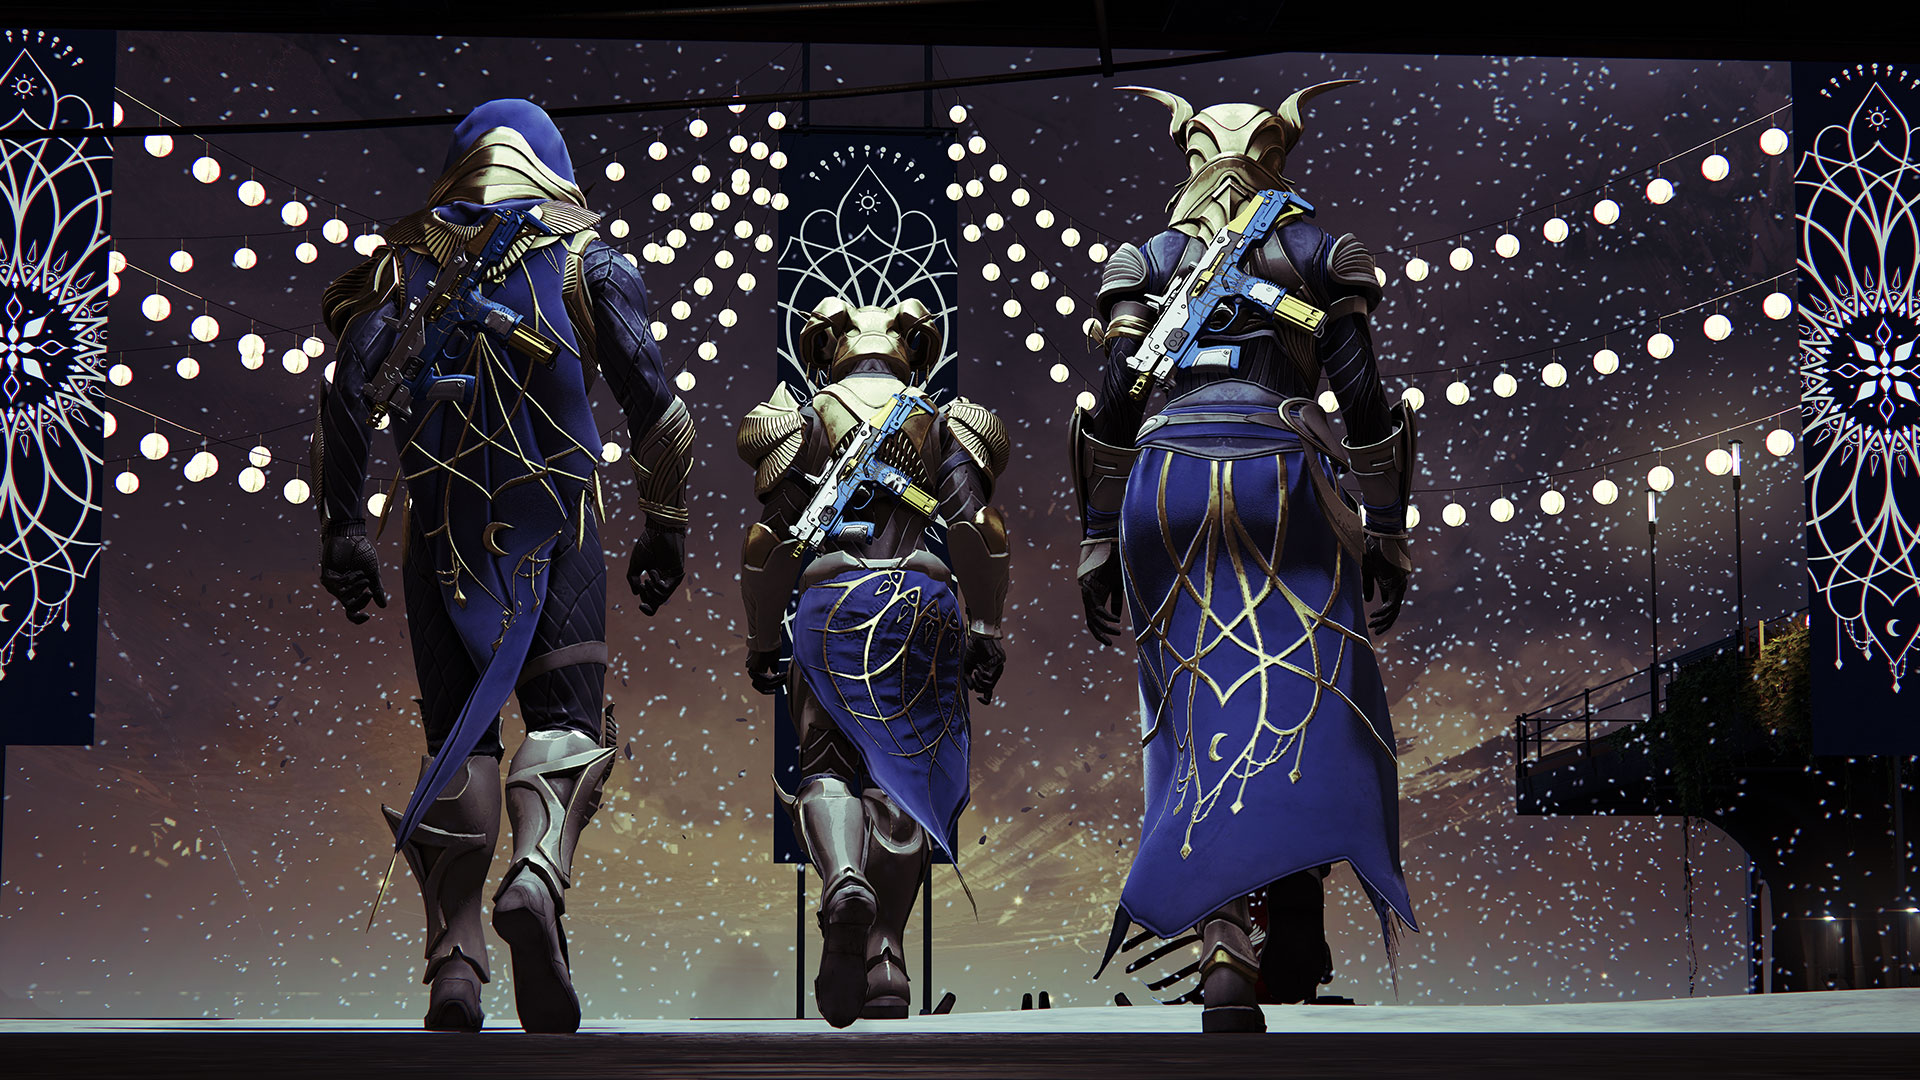 Destiny 2 Dawning 2019 guide: Collect ingredients and gifts, bake recipes